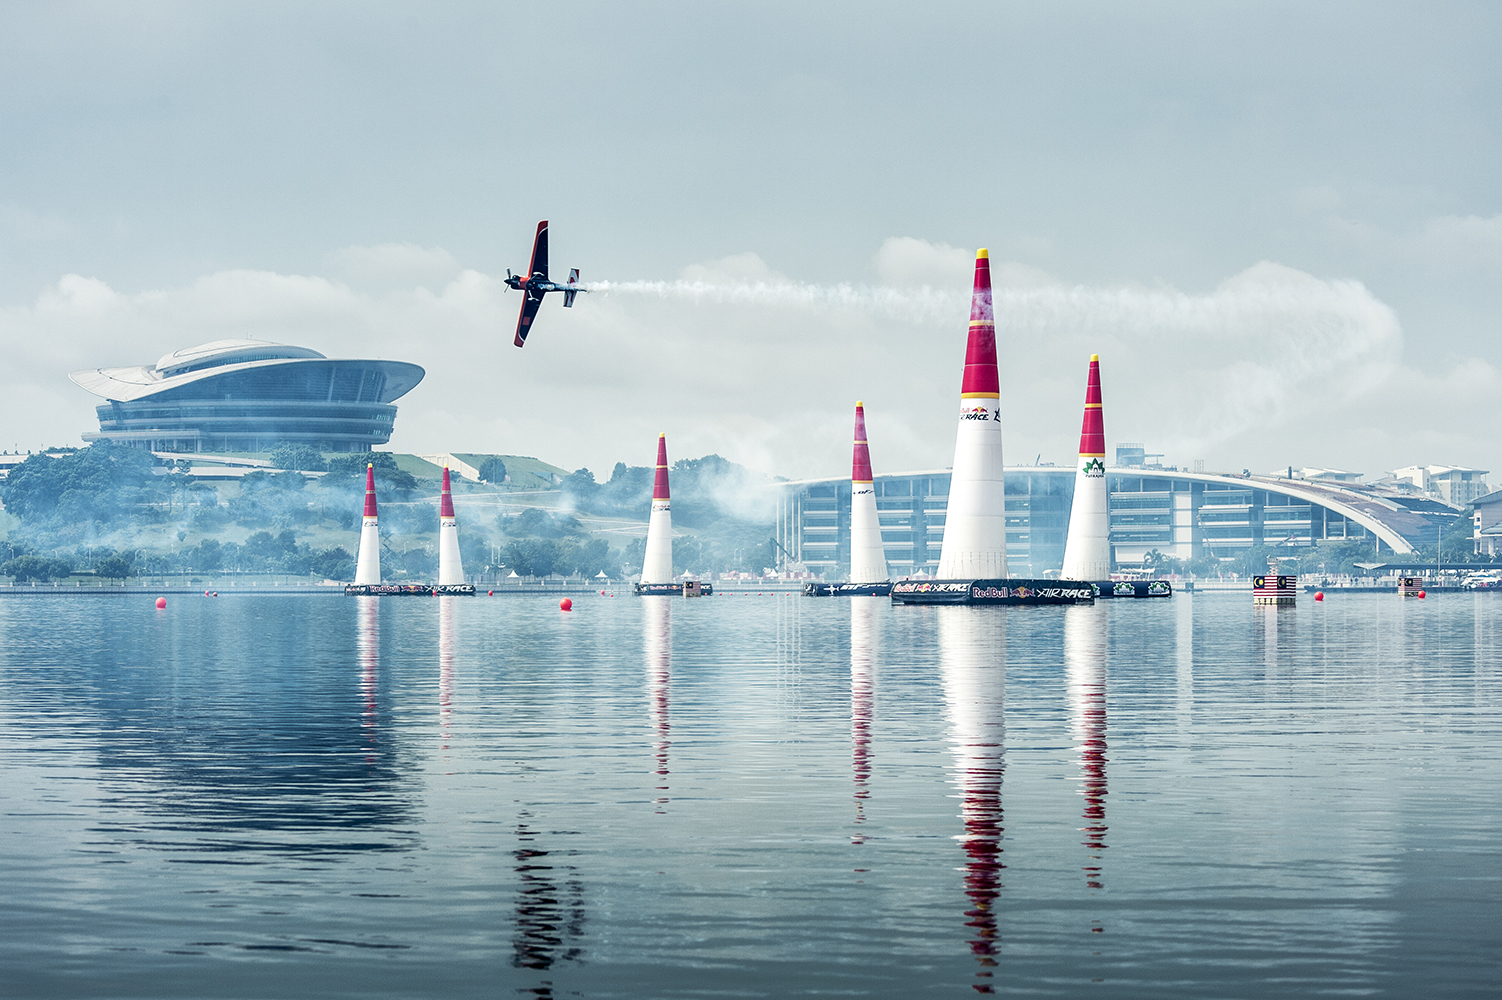 Nicolas Ivanoff of France performs during the training for the third stage of the Red Bull Air Race World Championship in Putrajaya, Malaysia on May 16, 2014. // Predrag Vuckovic/Red Bull Content Pool // P-20140516-00015 // Usage for editorial use only // Please go to www.redbullcontentpool.com for further information. //